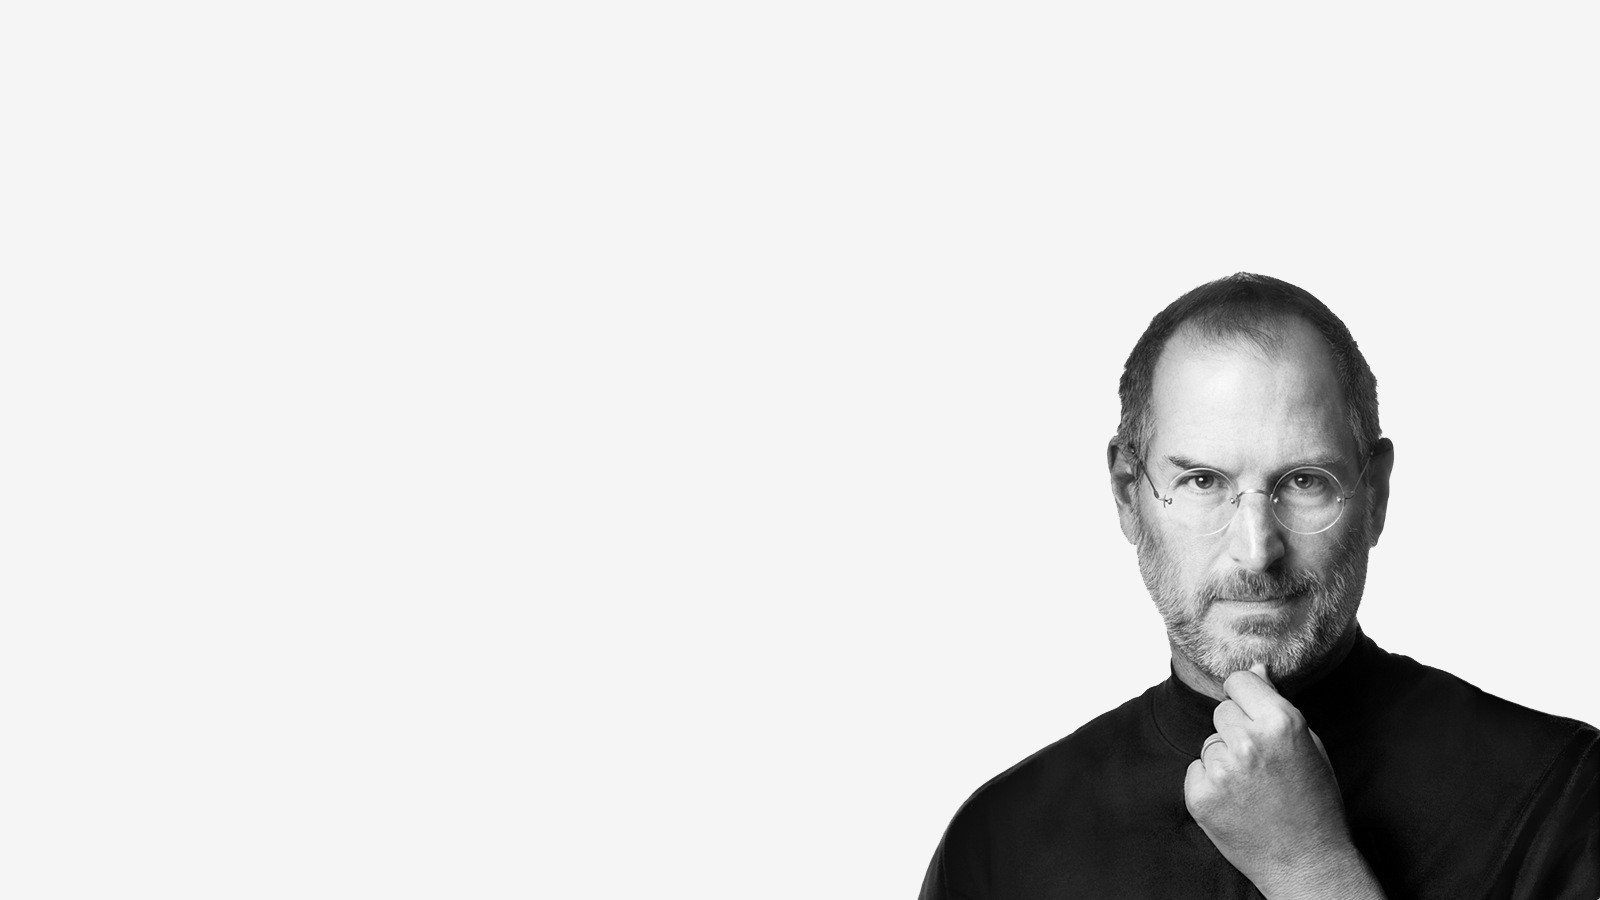 Steve Jobs white background HD Wallpaper